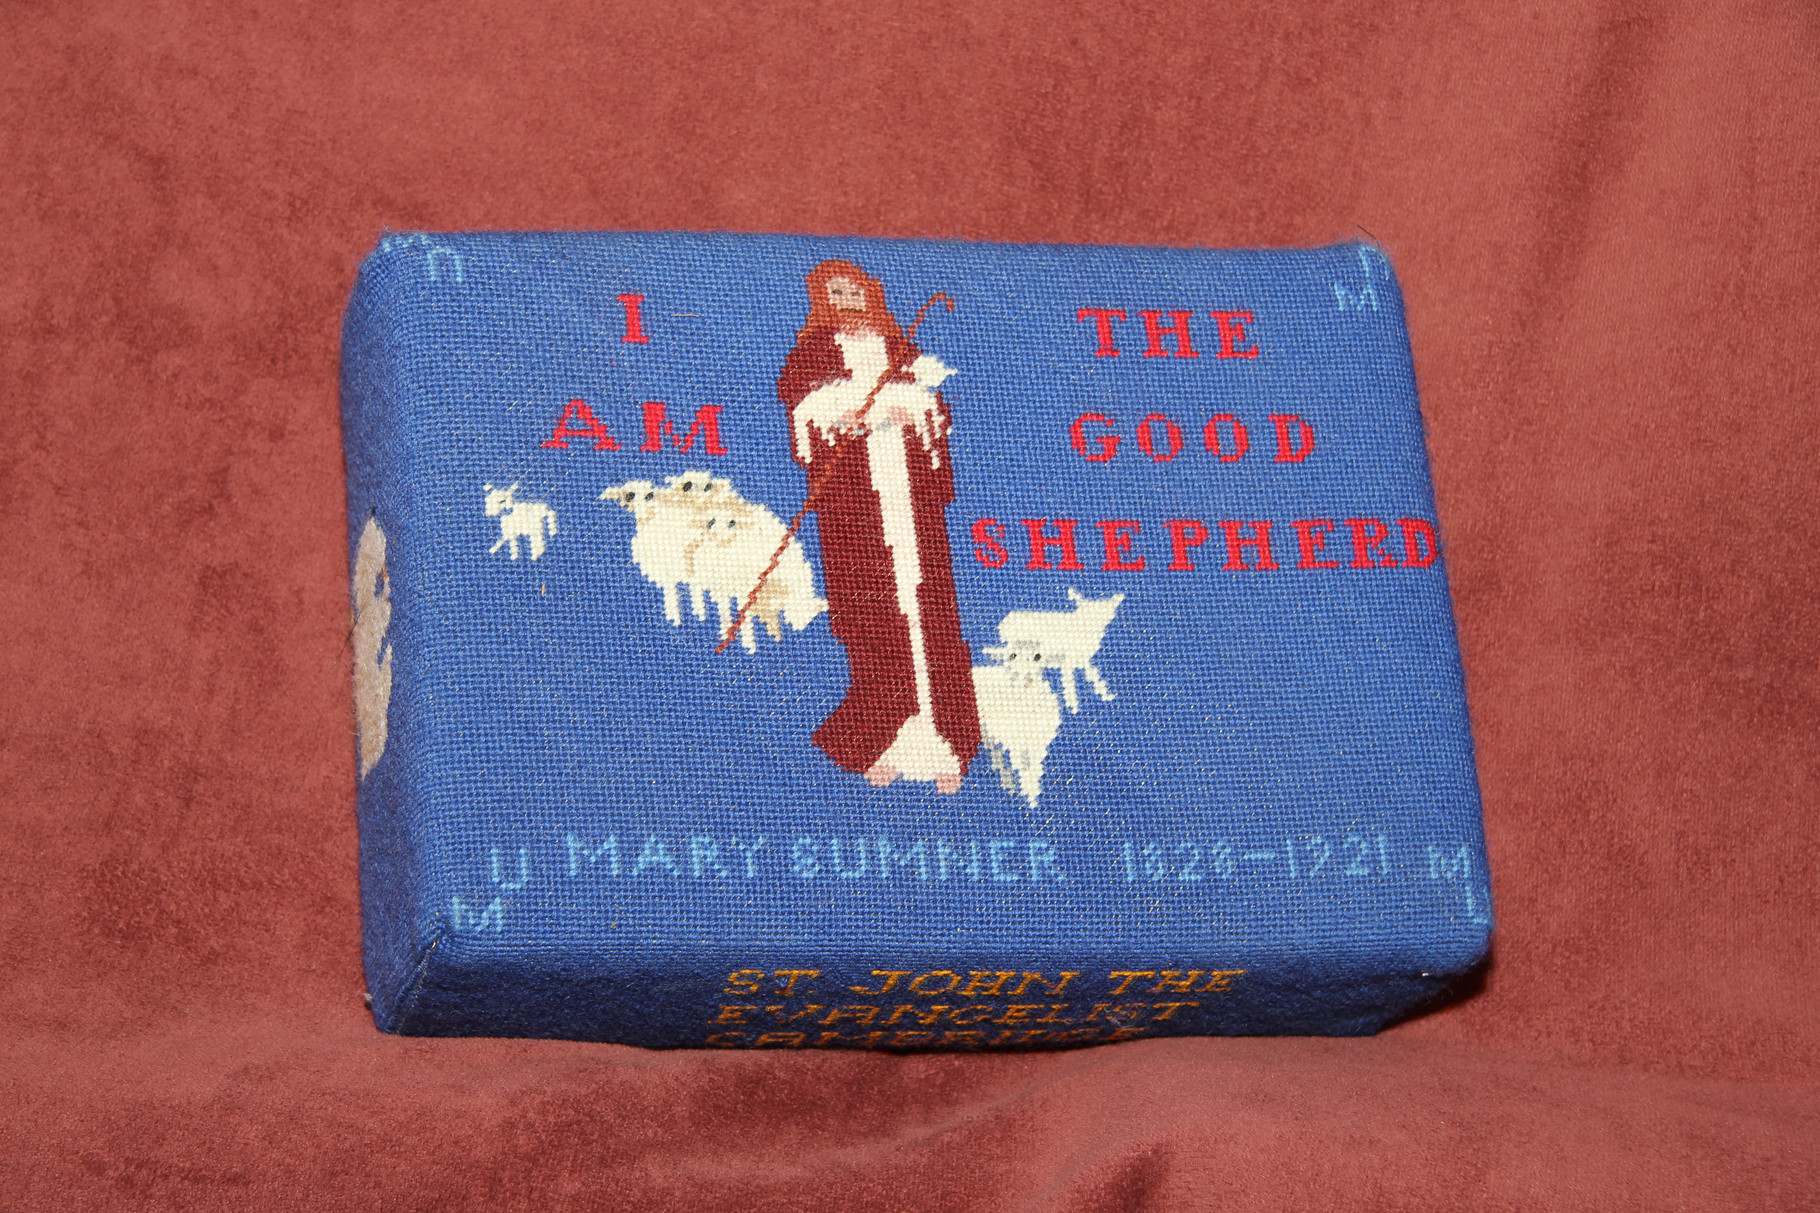 """66. """"I am the Good Shepherd"""" dedicated to the Mother's Union in memory of Mary Sumner – worked by Beryl Johnson. Designed by Pamela Barrell from an image found by Marie Burrows."""